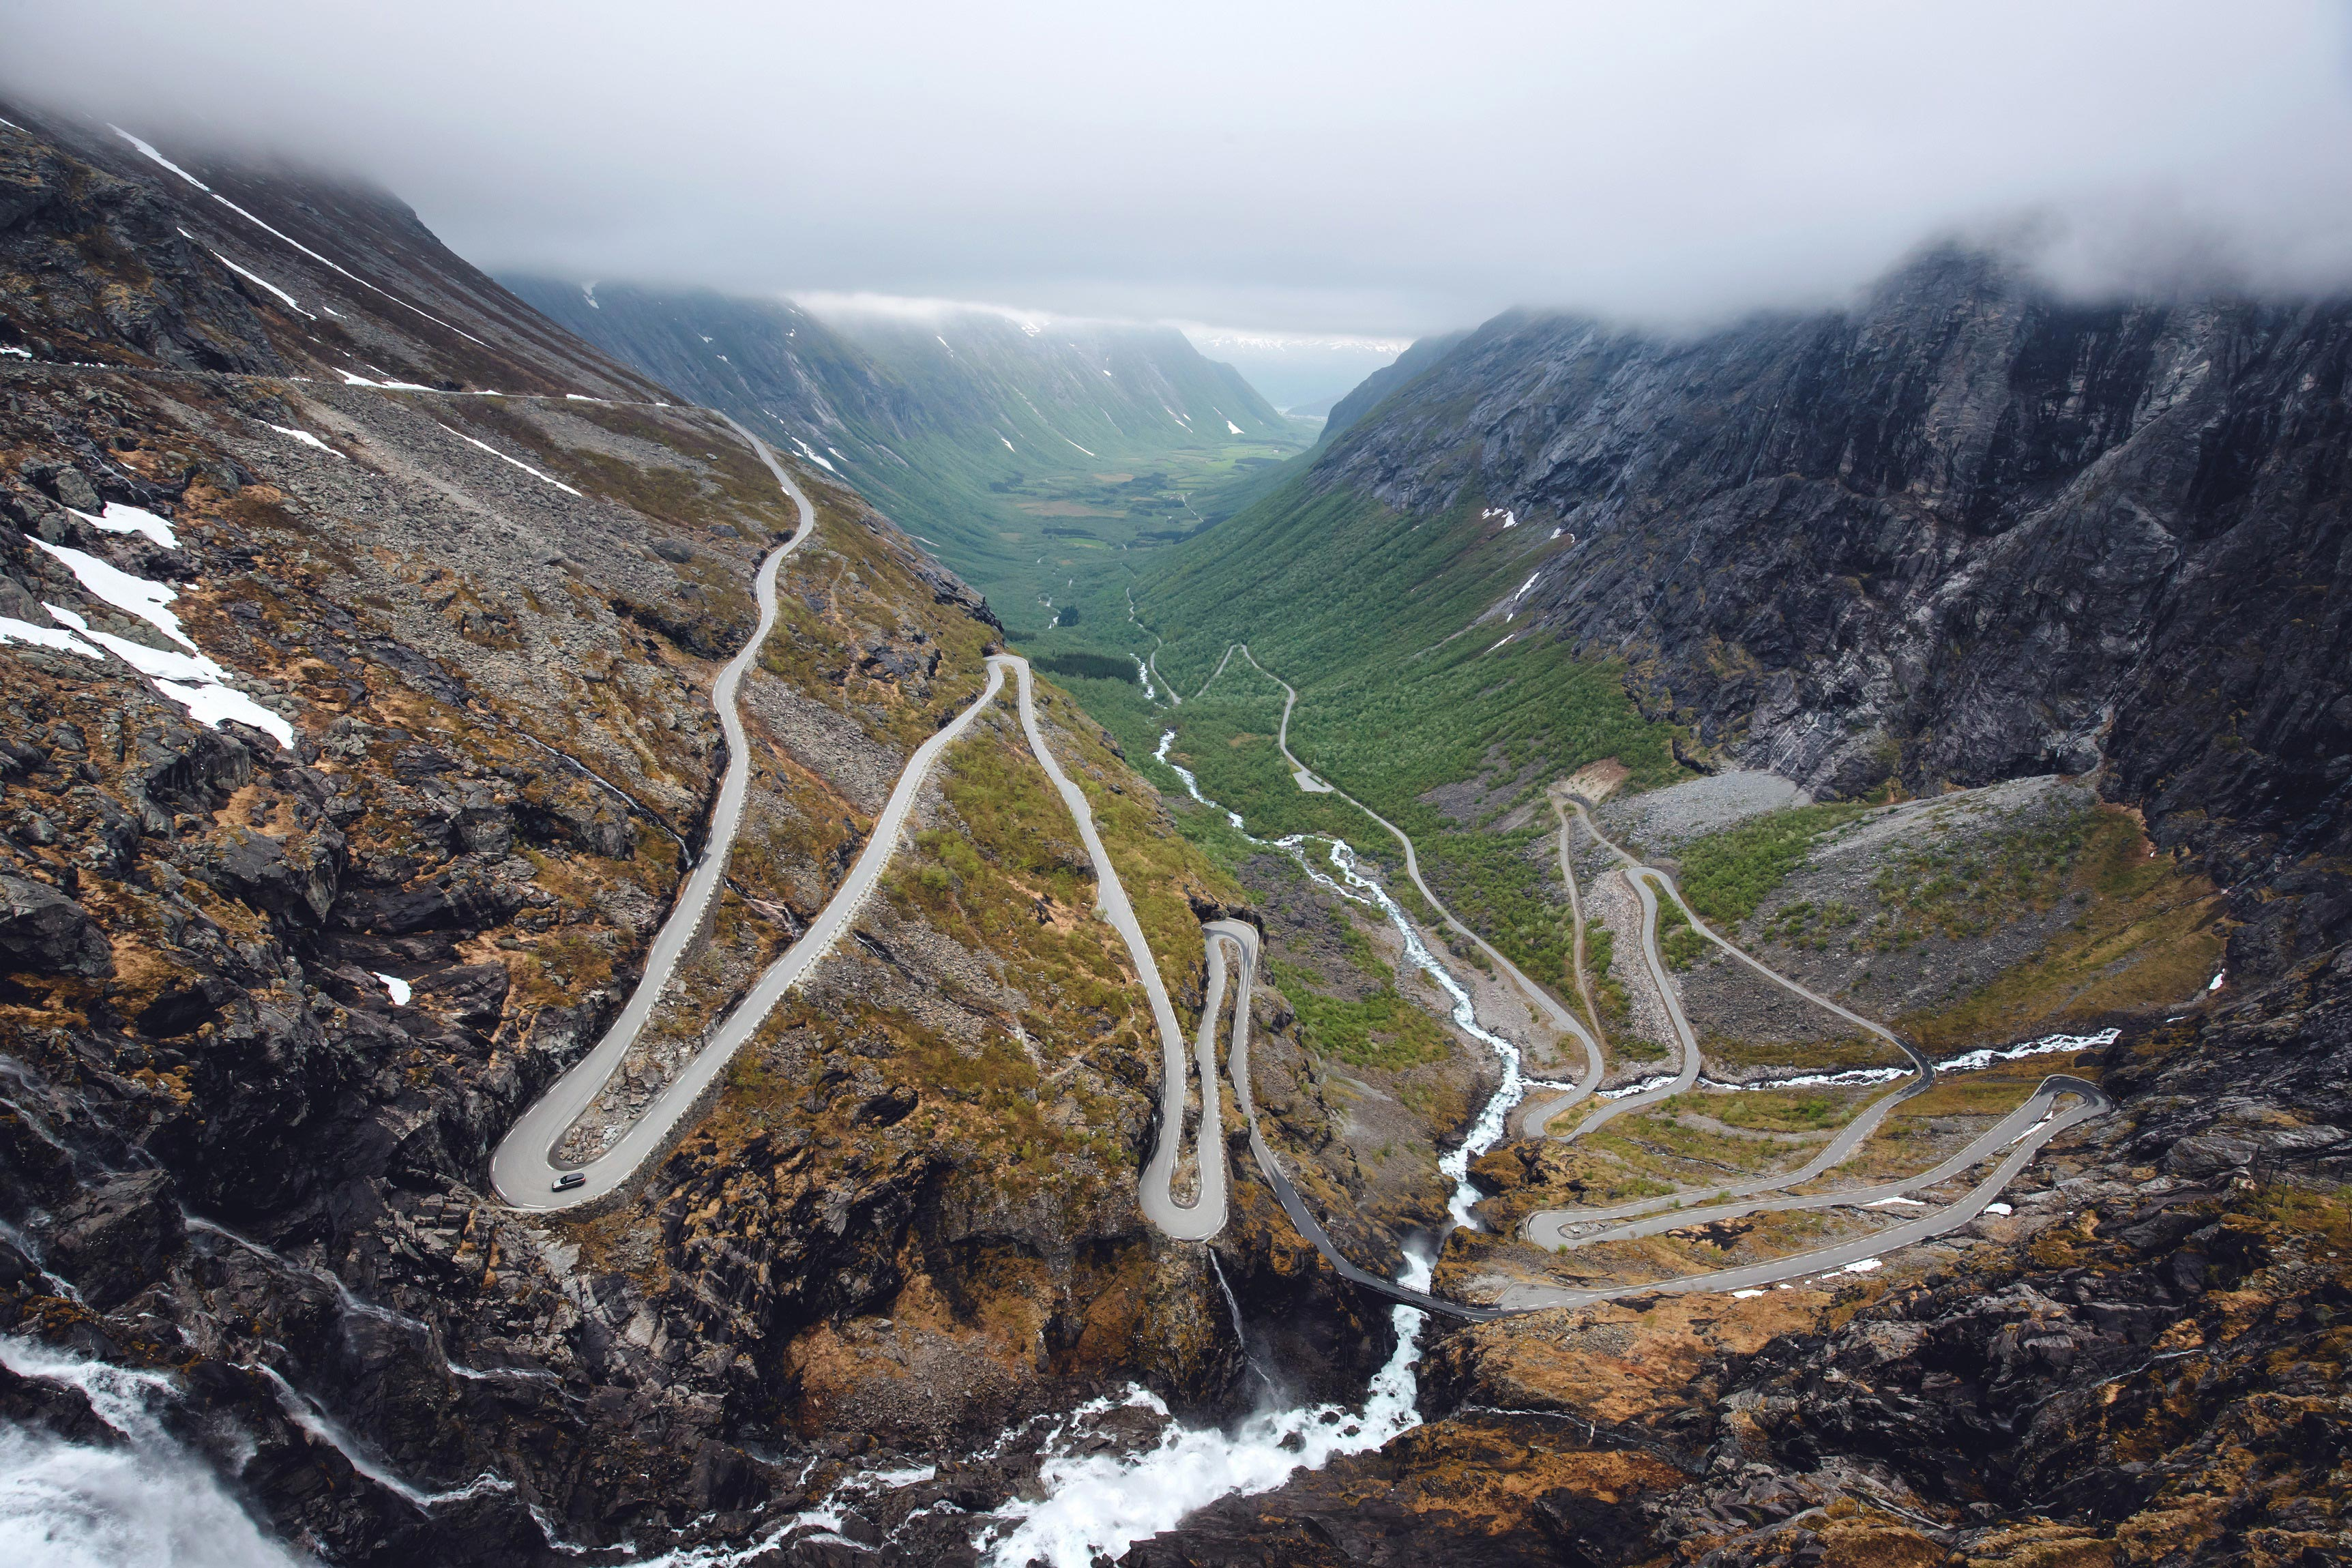 Land rover and royal geographical society launch 2021 'earth photo' challenge